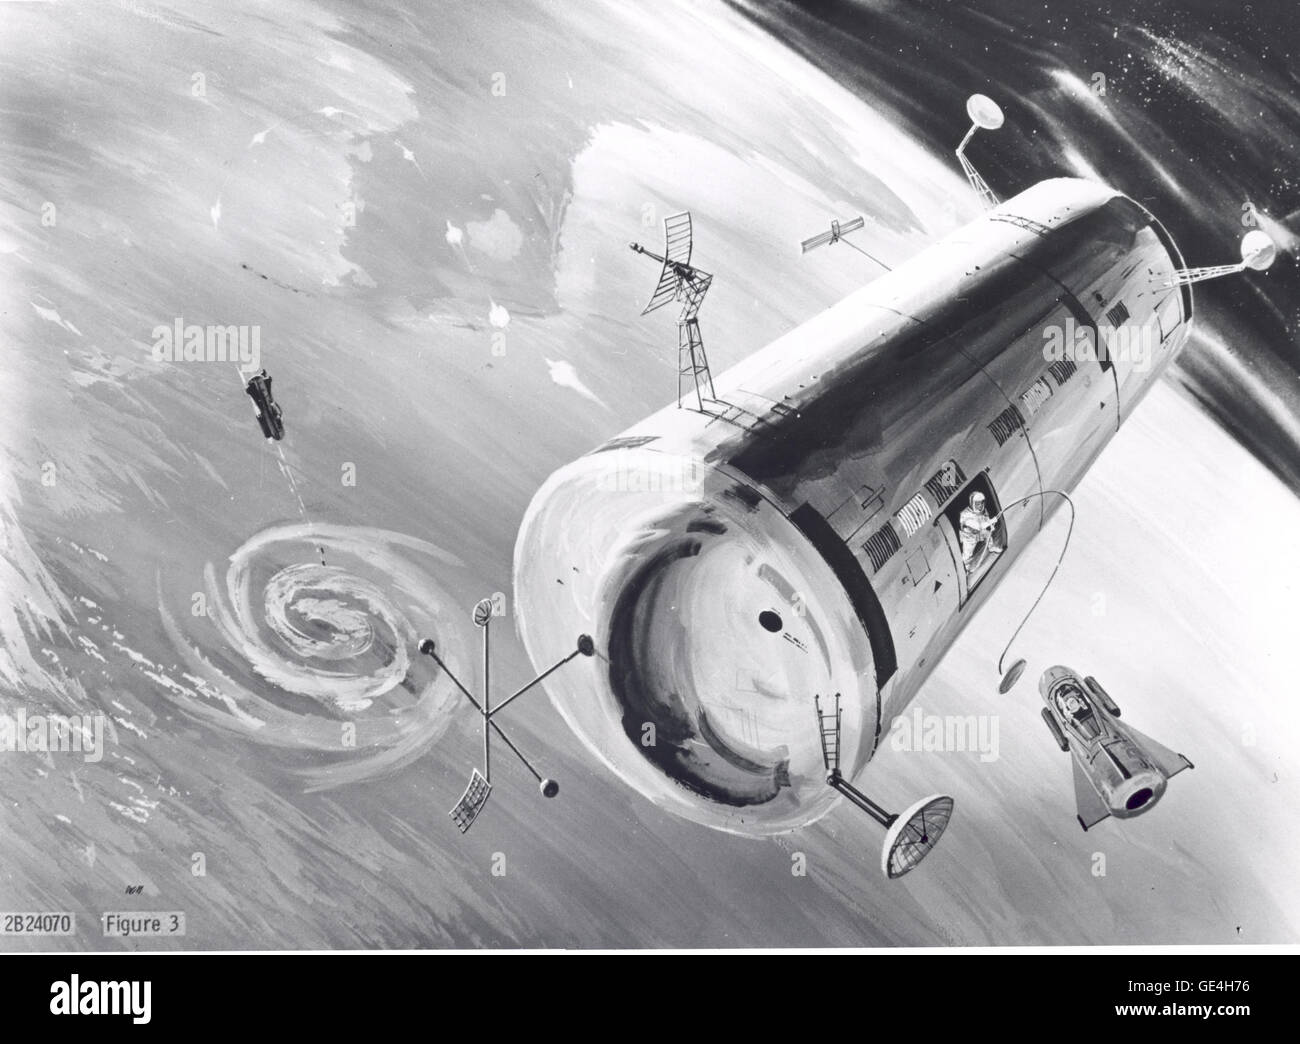 A 1960 concept image of the United States Air Force's proposed Manned Orbiting Laboratory (MOL) that was intended - Stock Image